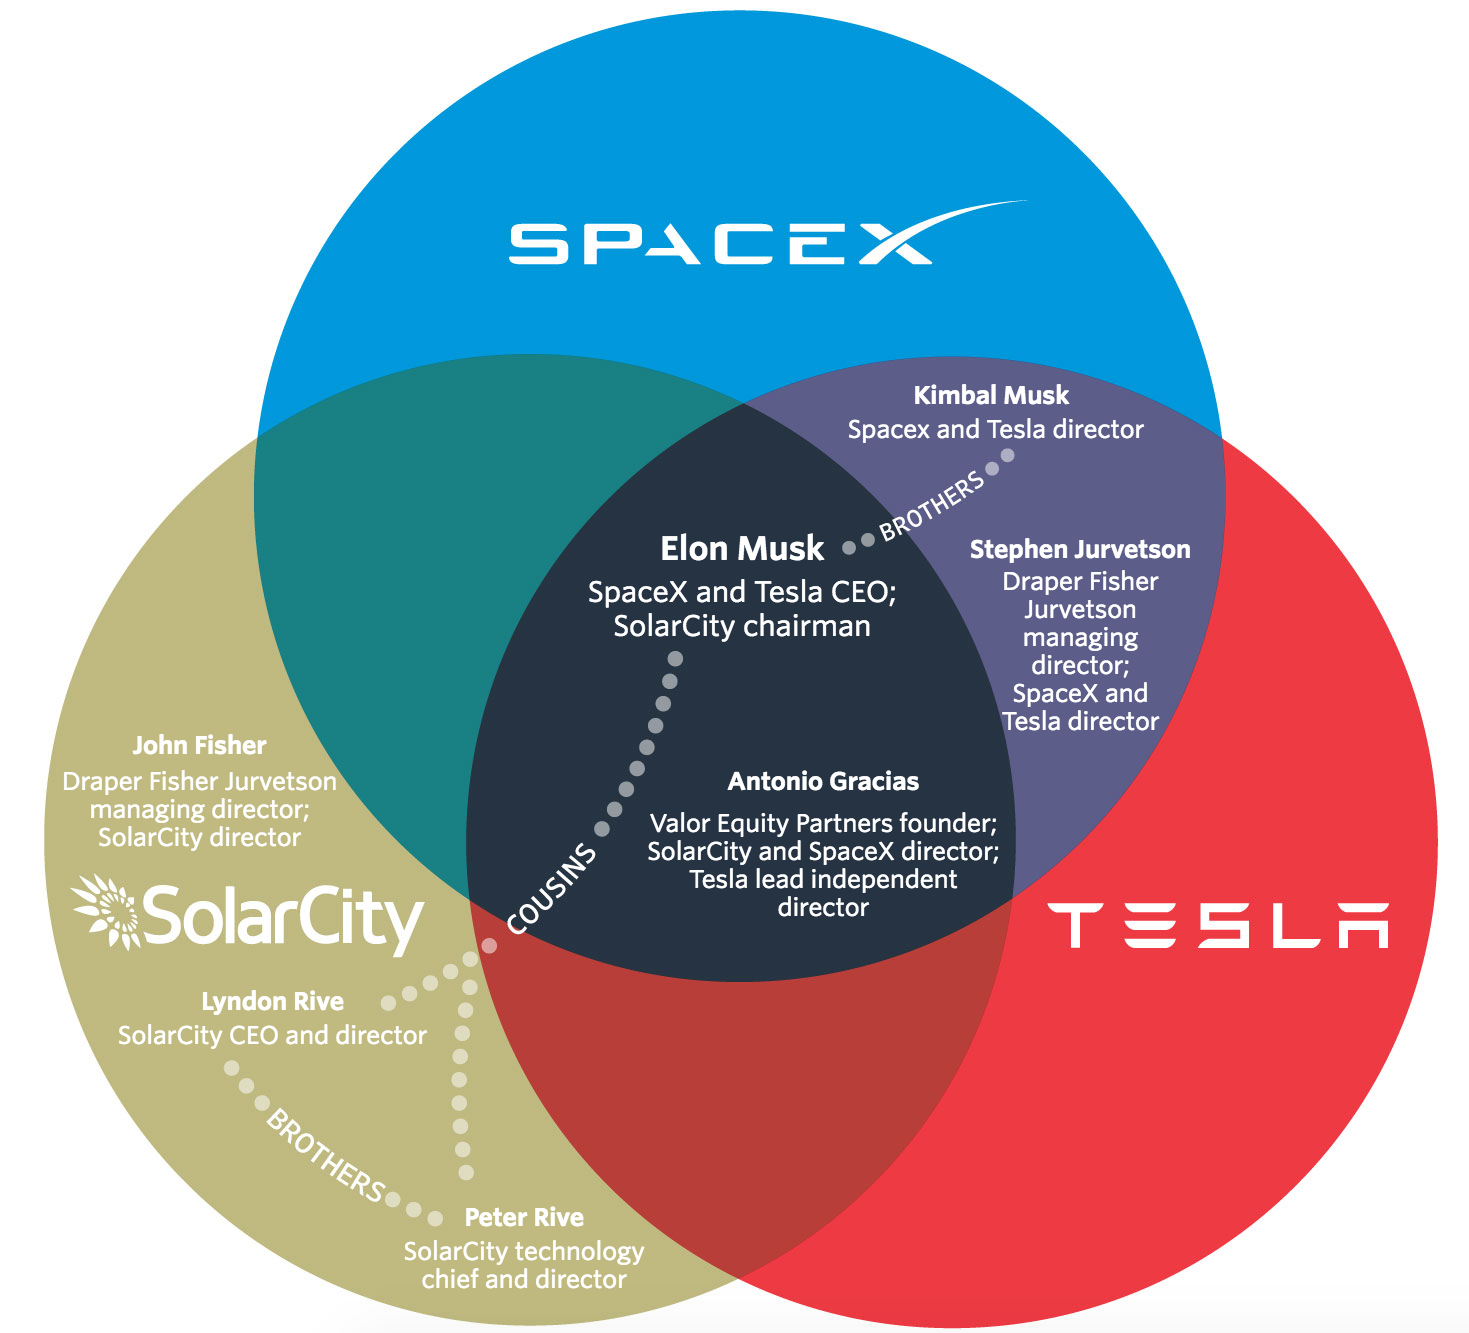 SpaceX Management Map